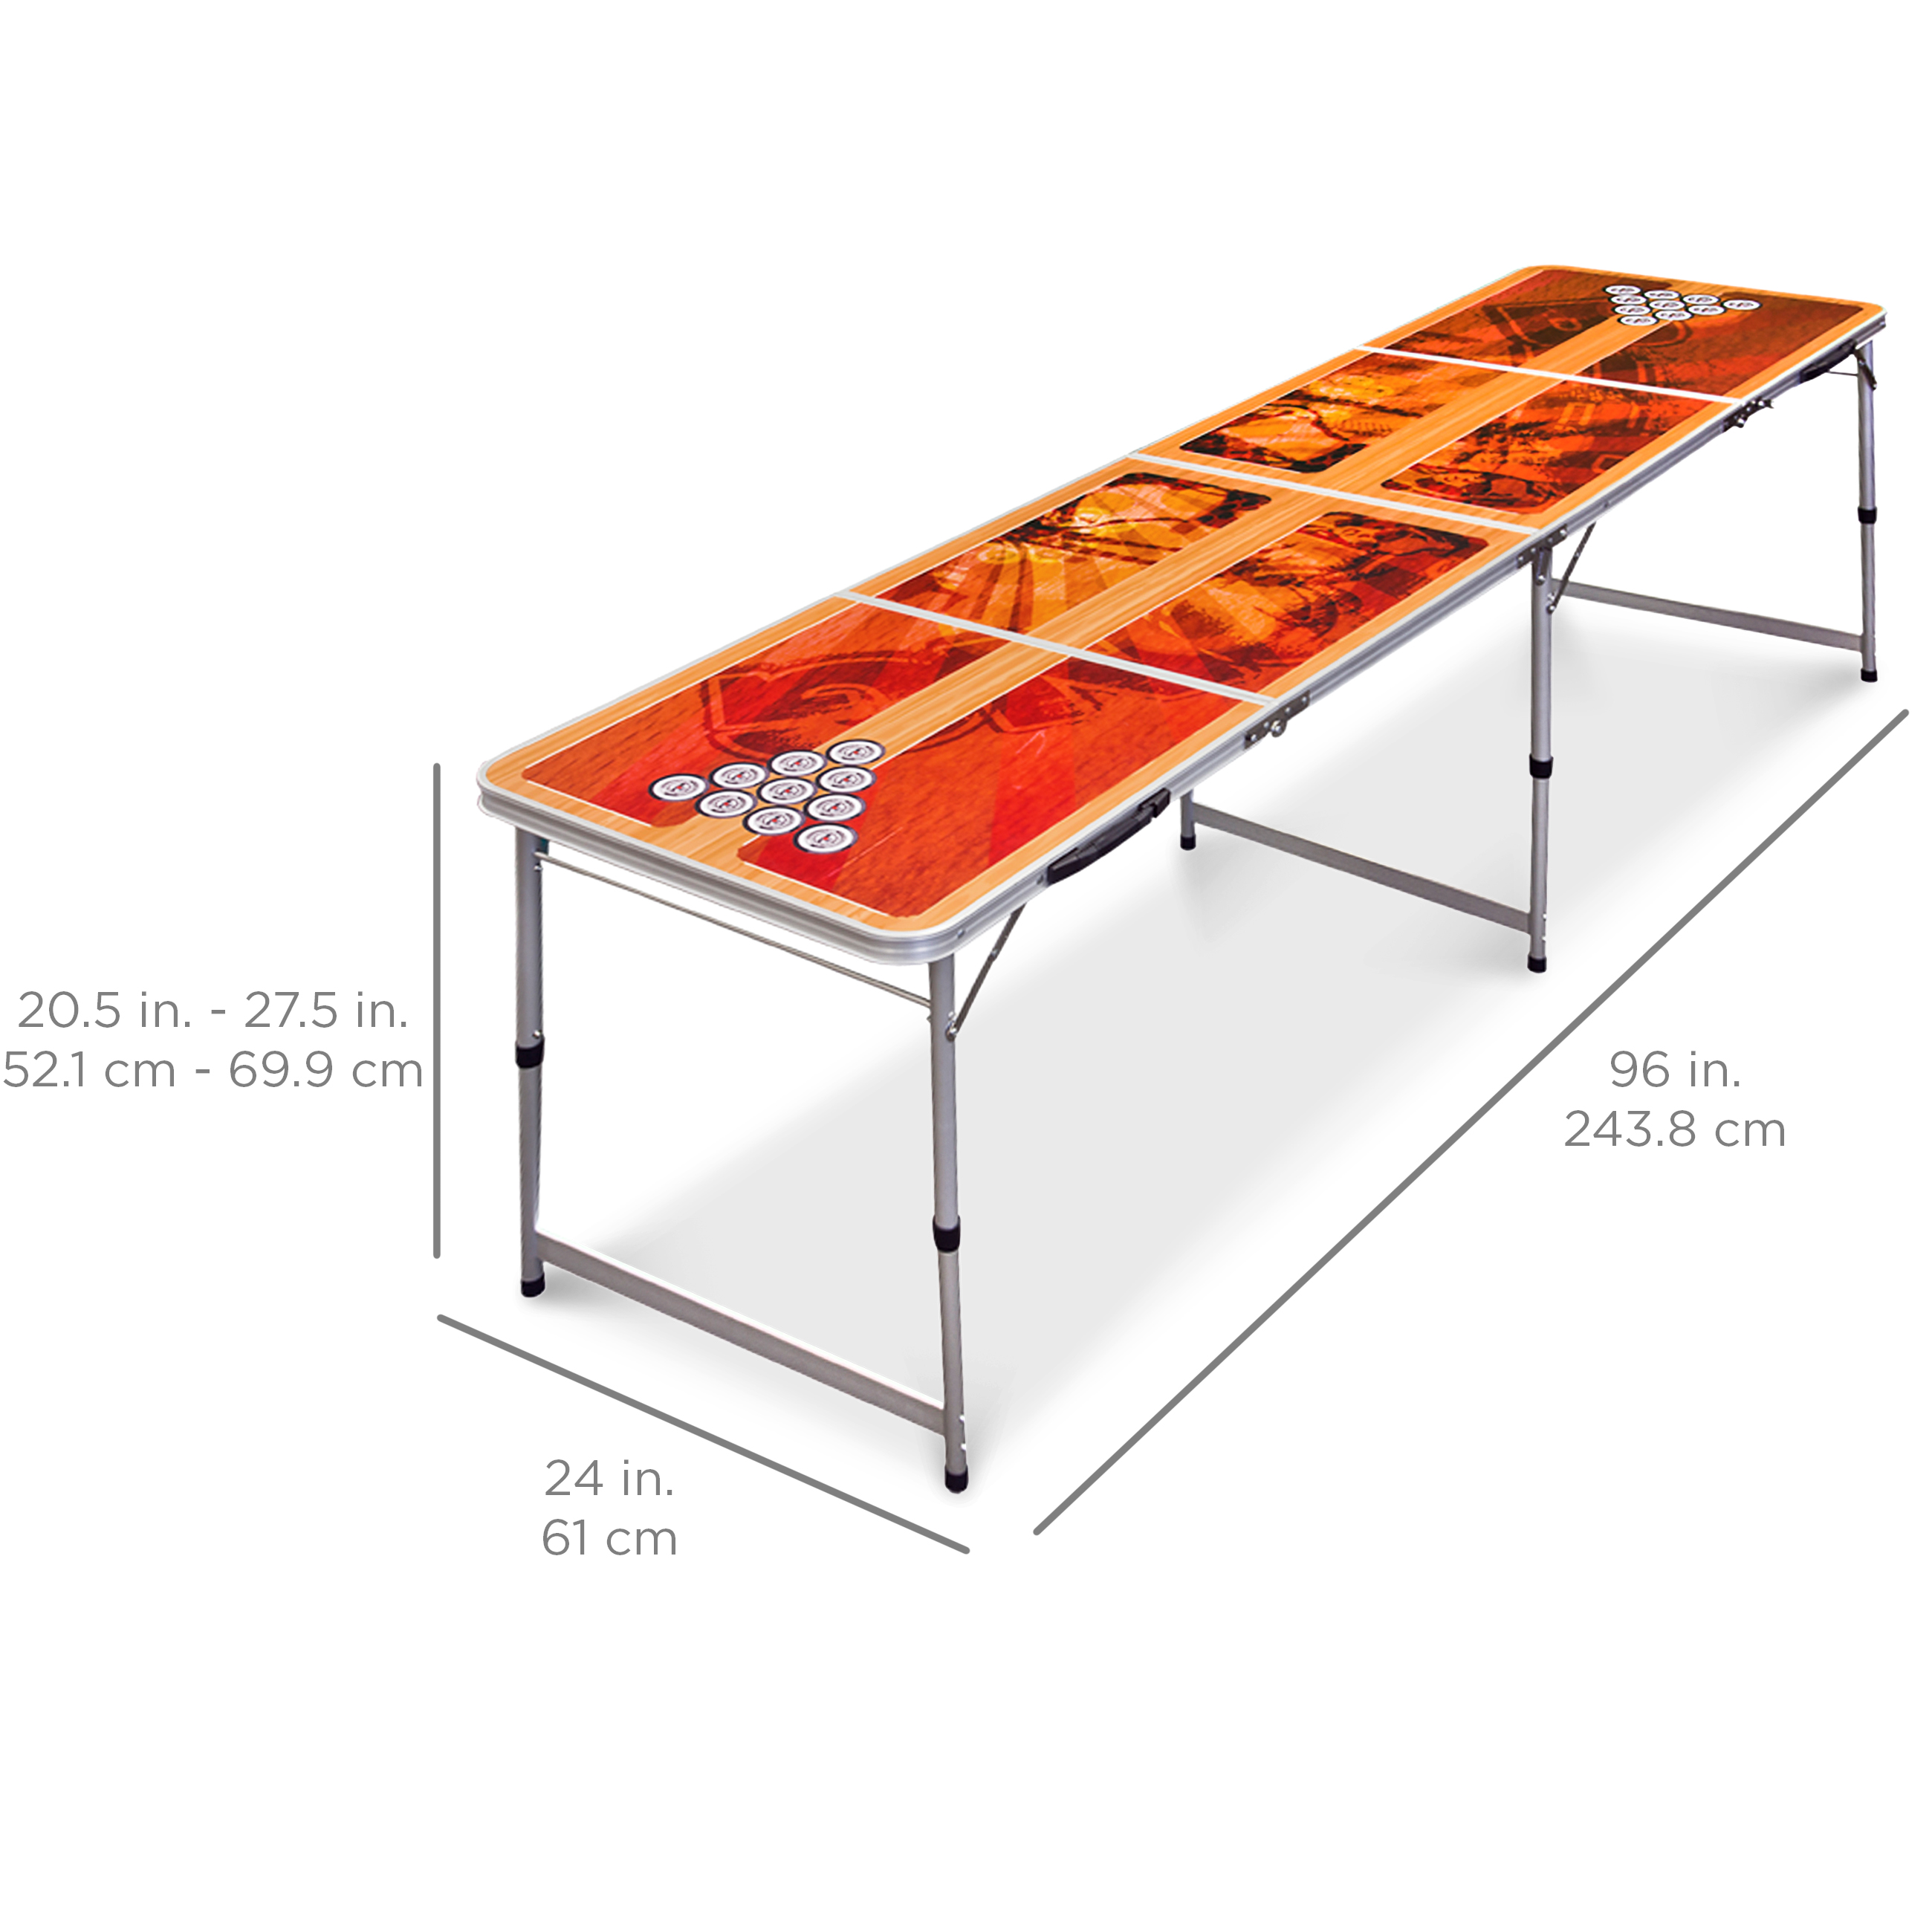 Best Choice Products Beer Pong Table 8u0027 Portable Folding Outdoor Indoor College Party New  sc 1 st  Walmart & Beer Pong Tables